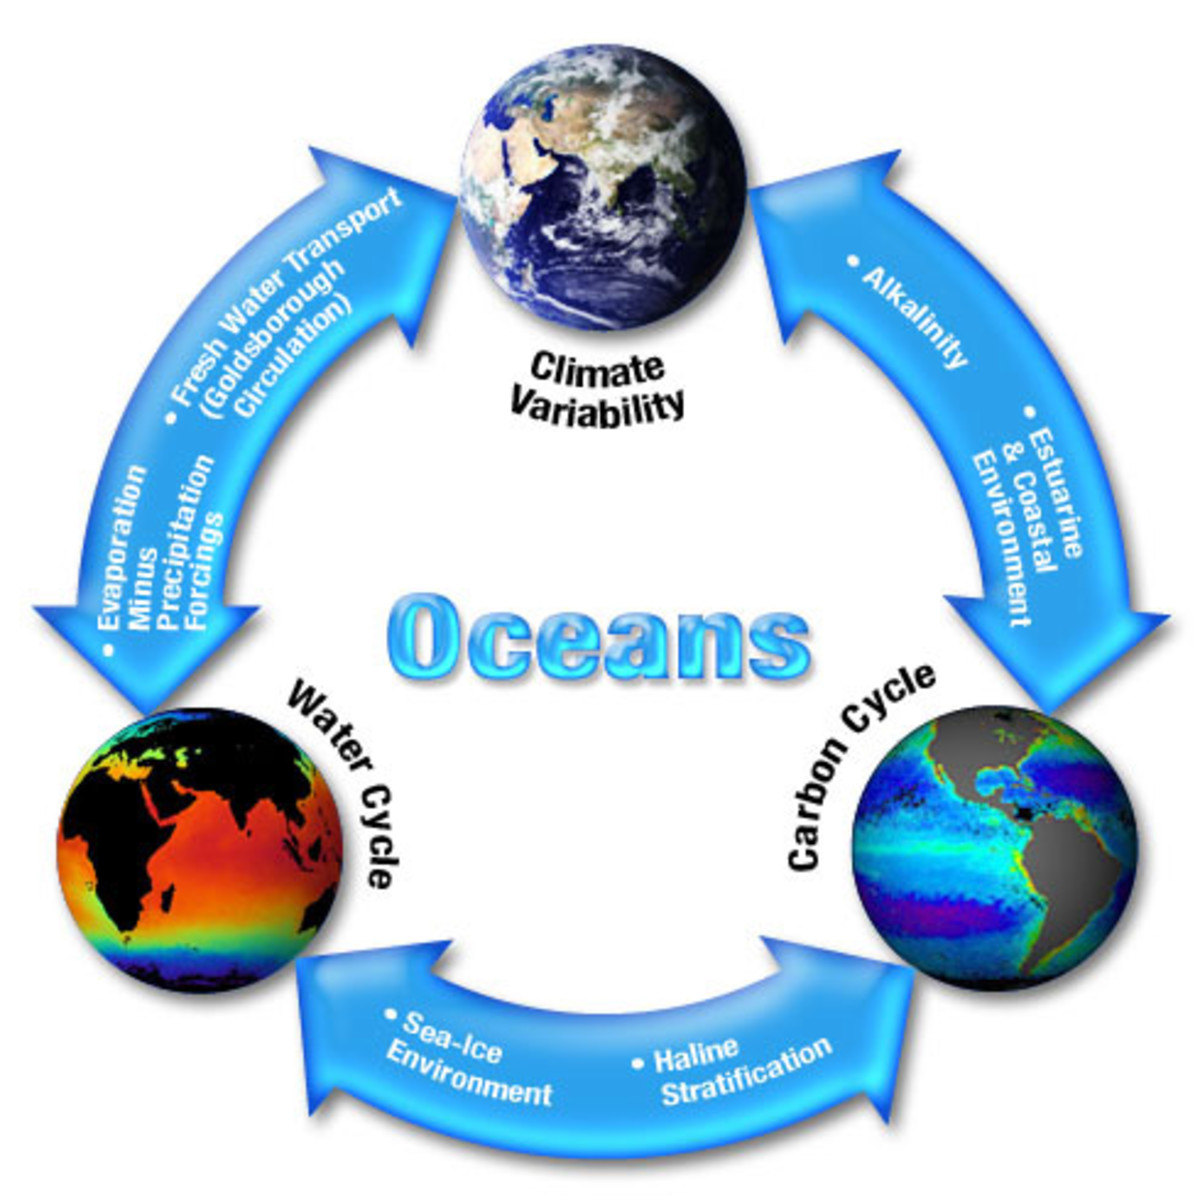 an analysis of the four stages of the successful hydrologic cycle The water cycle: an explanation water  also known as the hydrologic cycle, the water cycle describes the process by which the various forms of water move about the planet in a fairly constant.